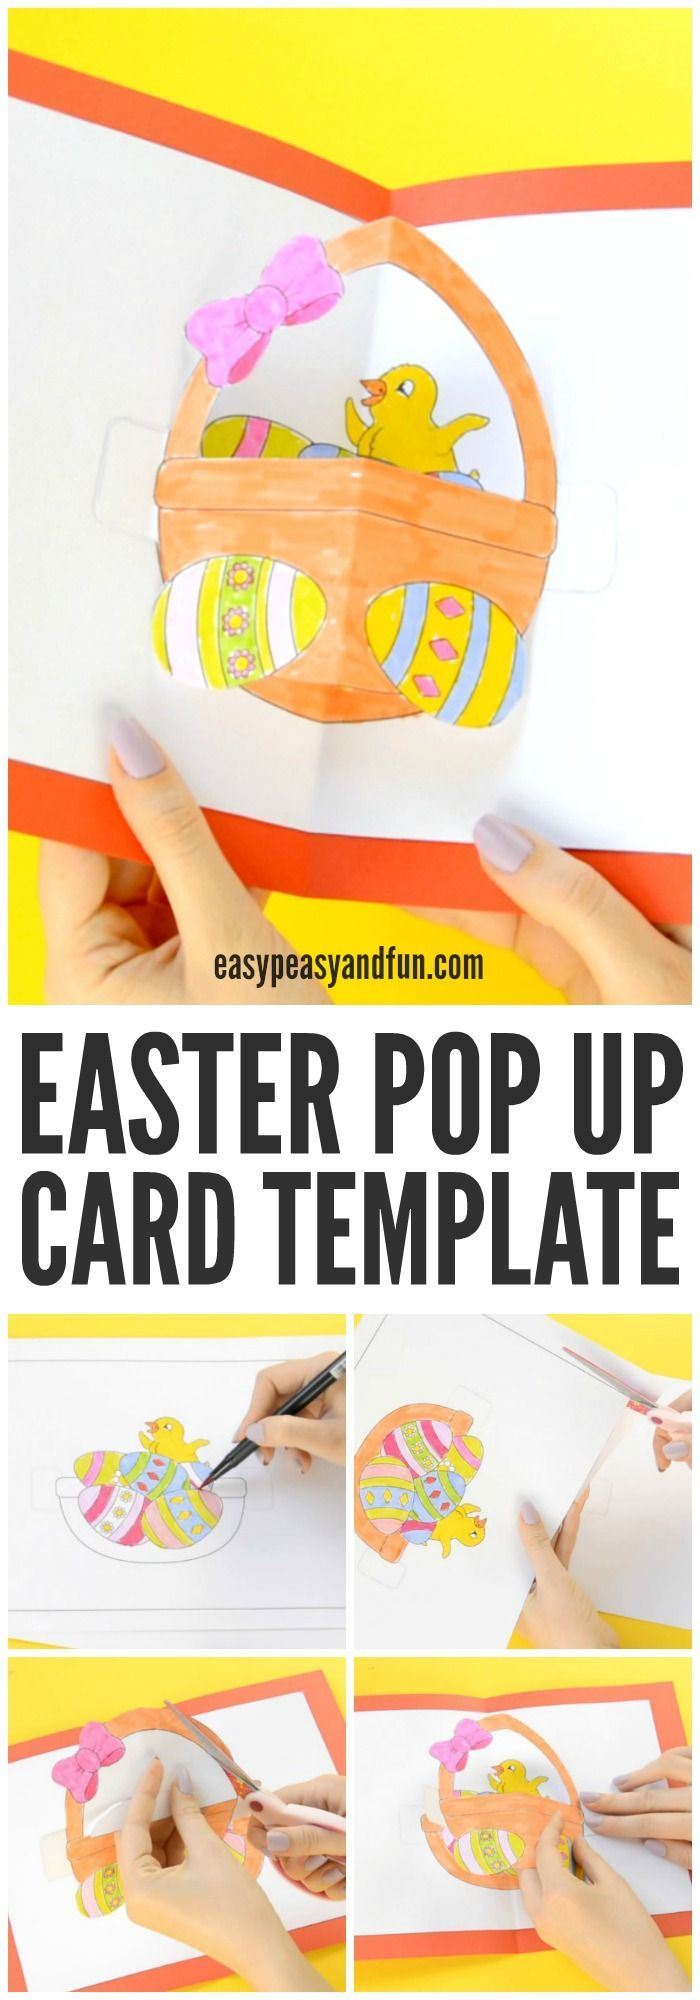 Pin On Kids Easter Ideas